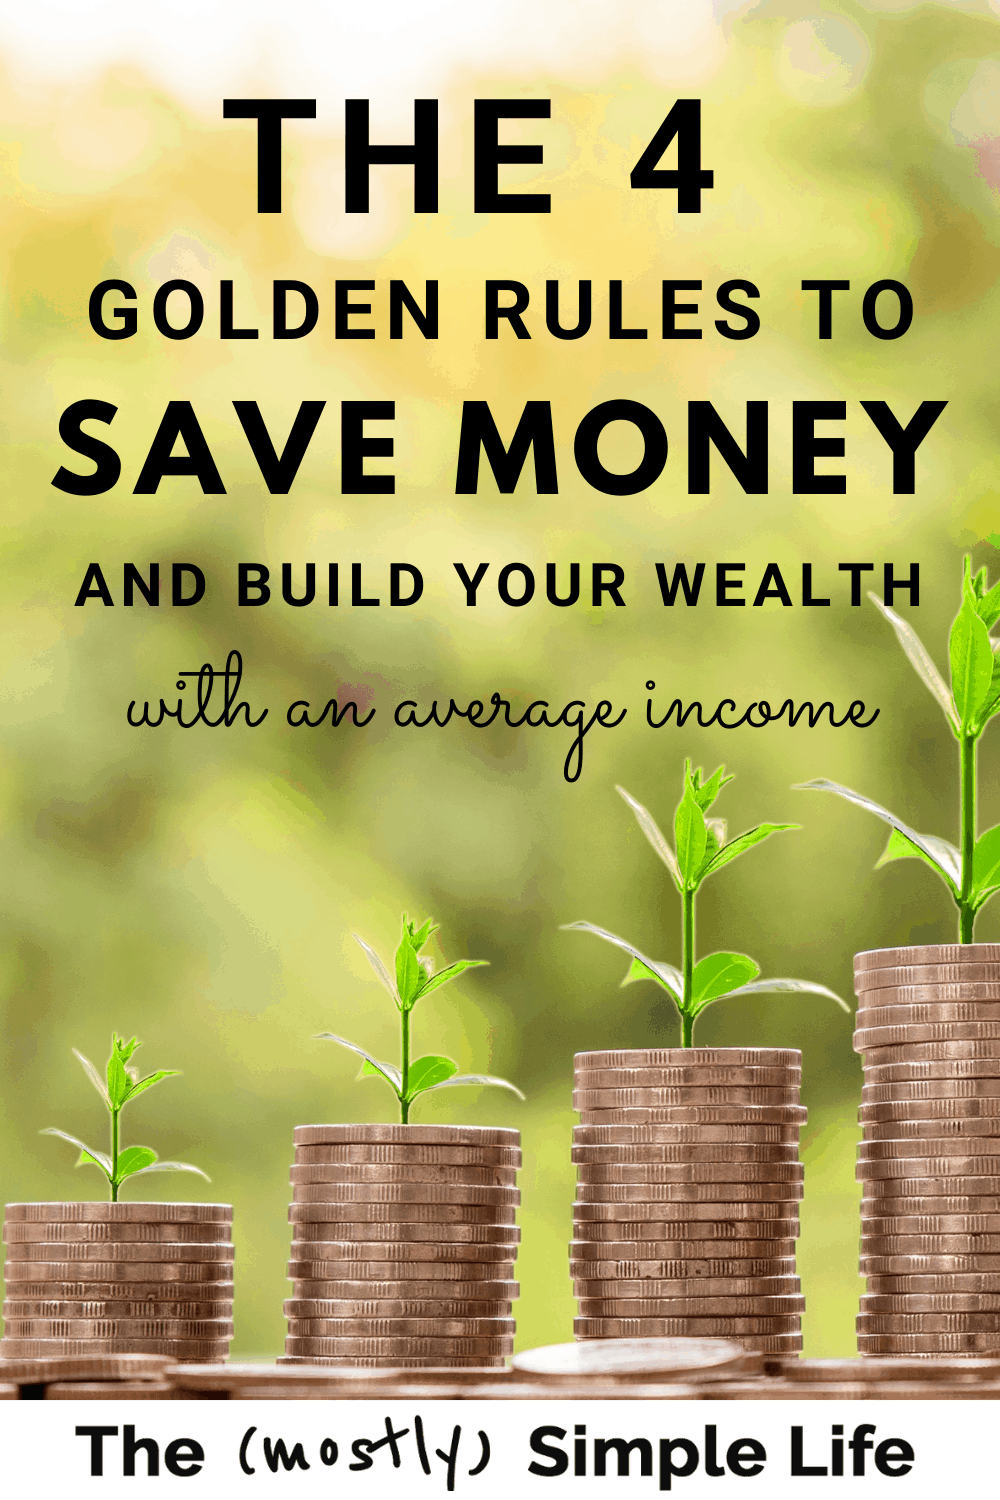 The 4 Golden Rules of Saving Money & Building Wealth, One Step at a Time